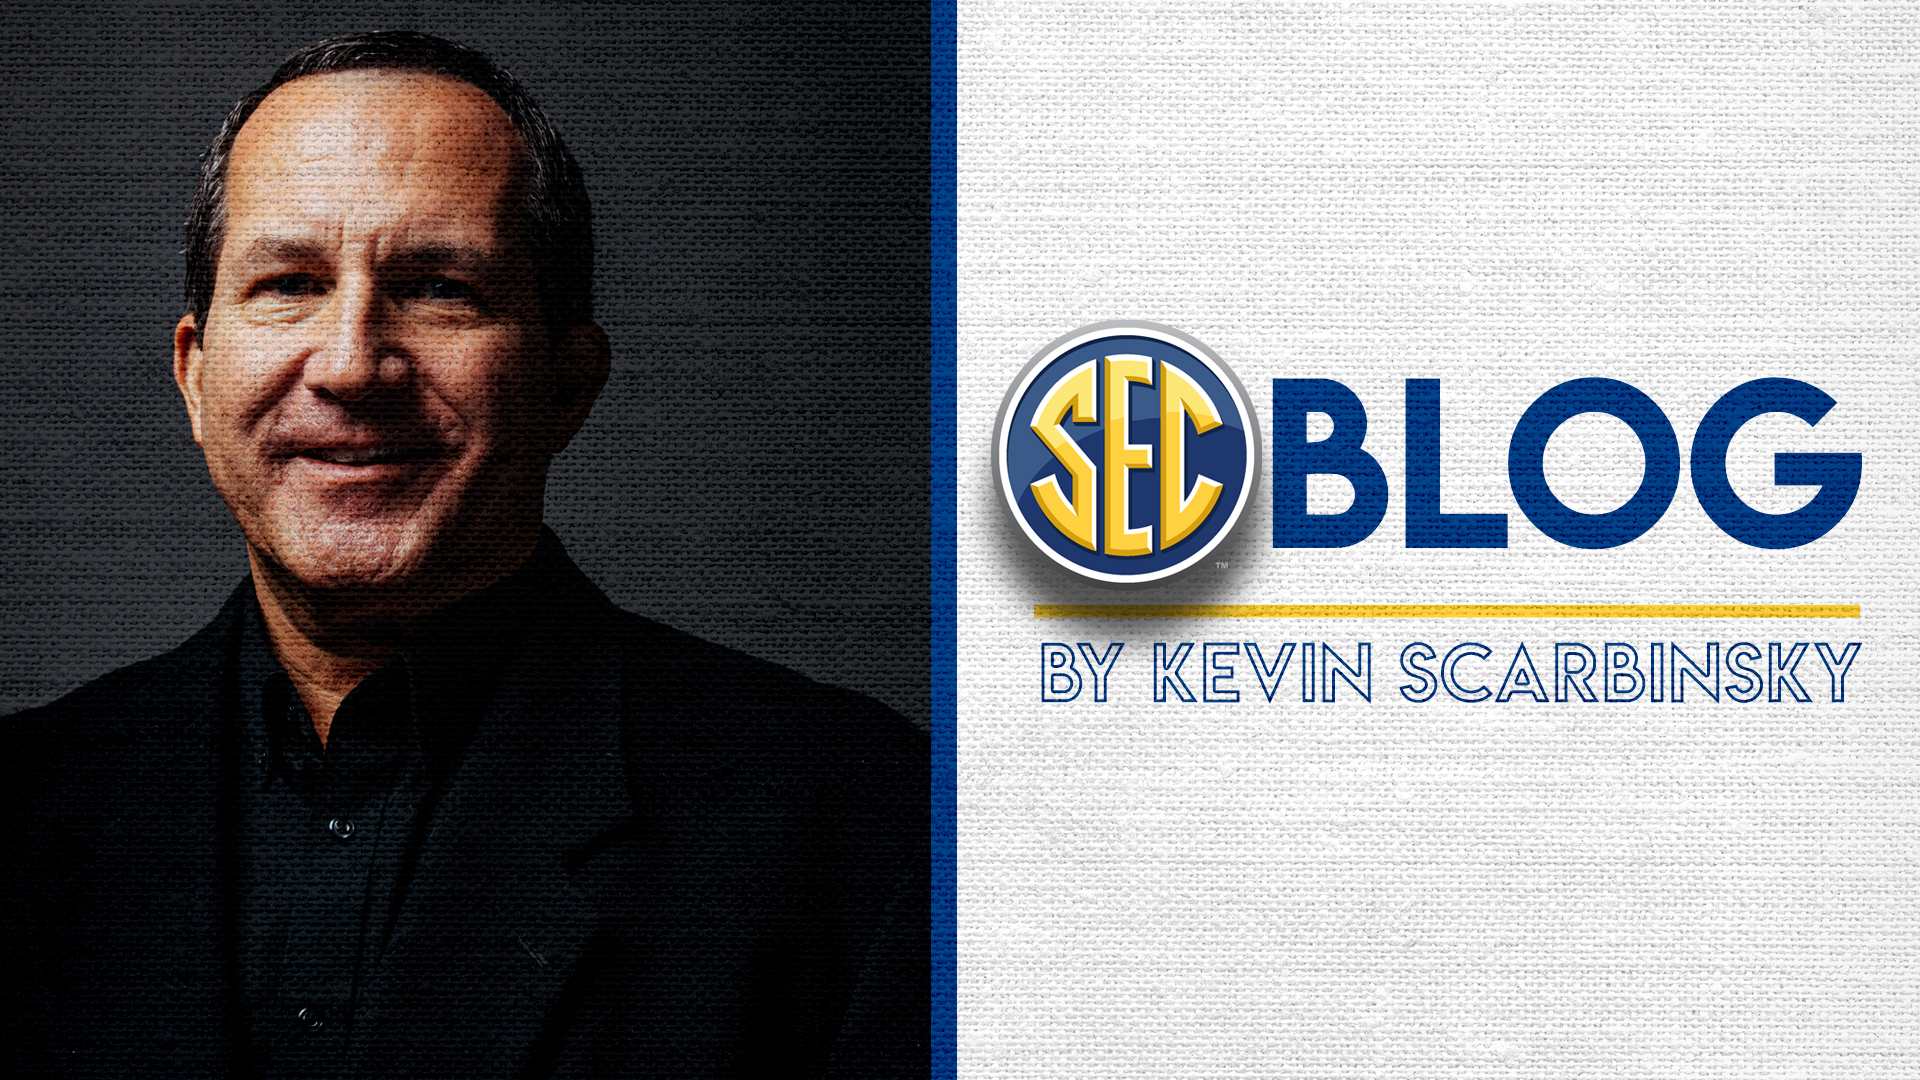 The SEC Blog: The day sports stopped